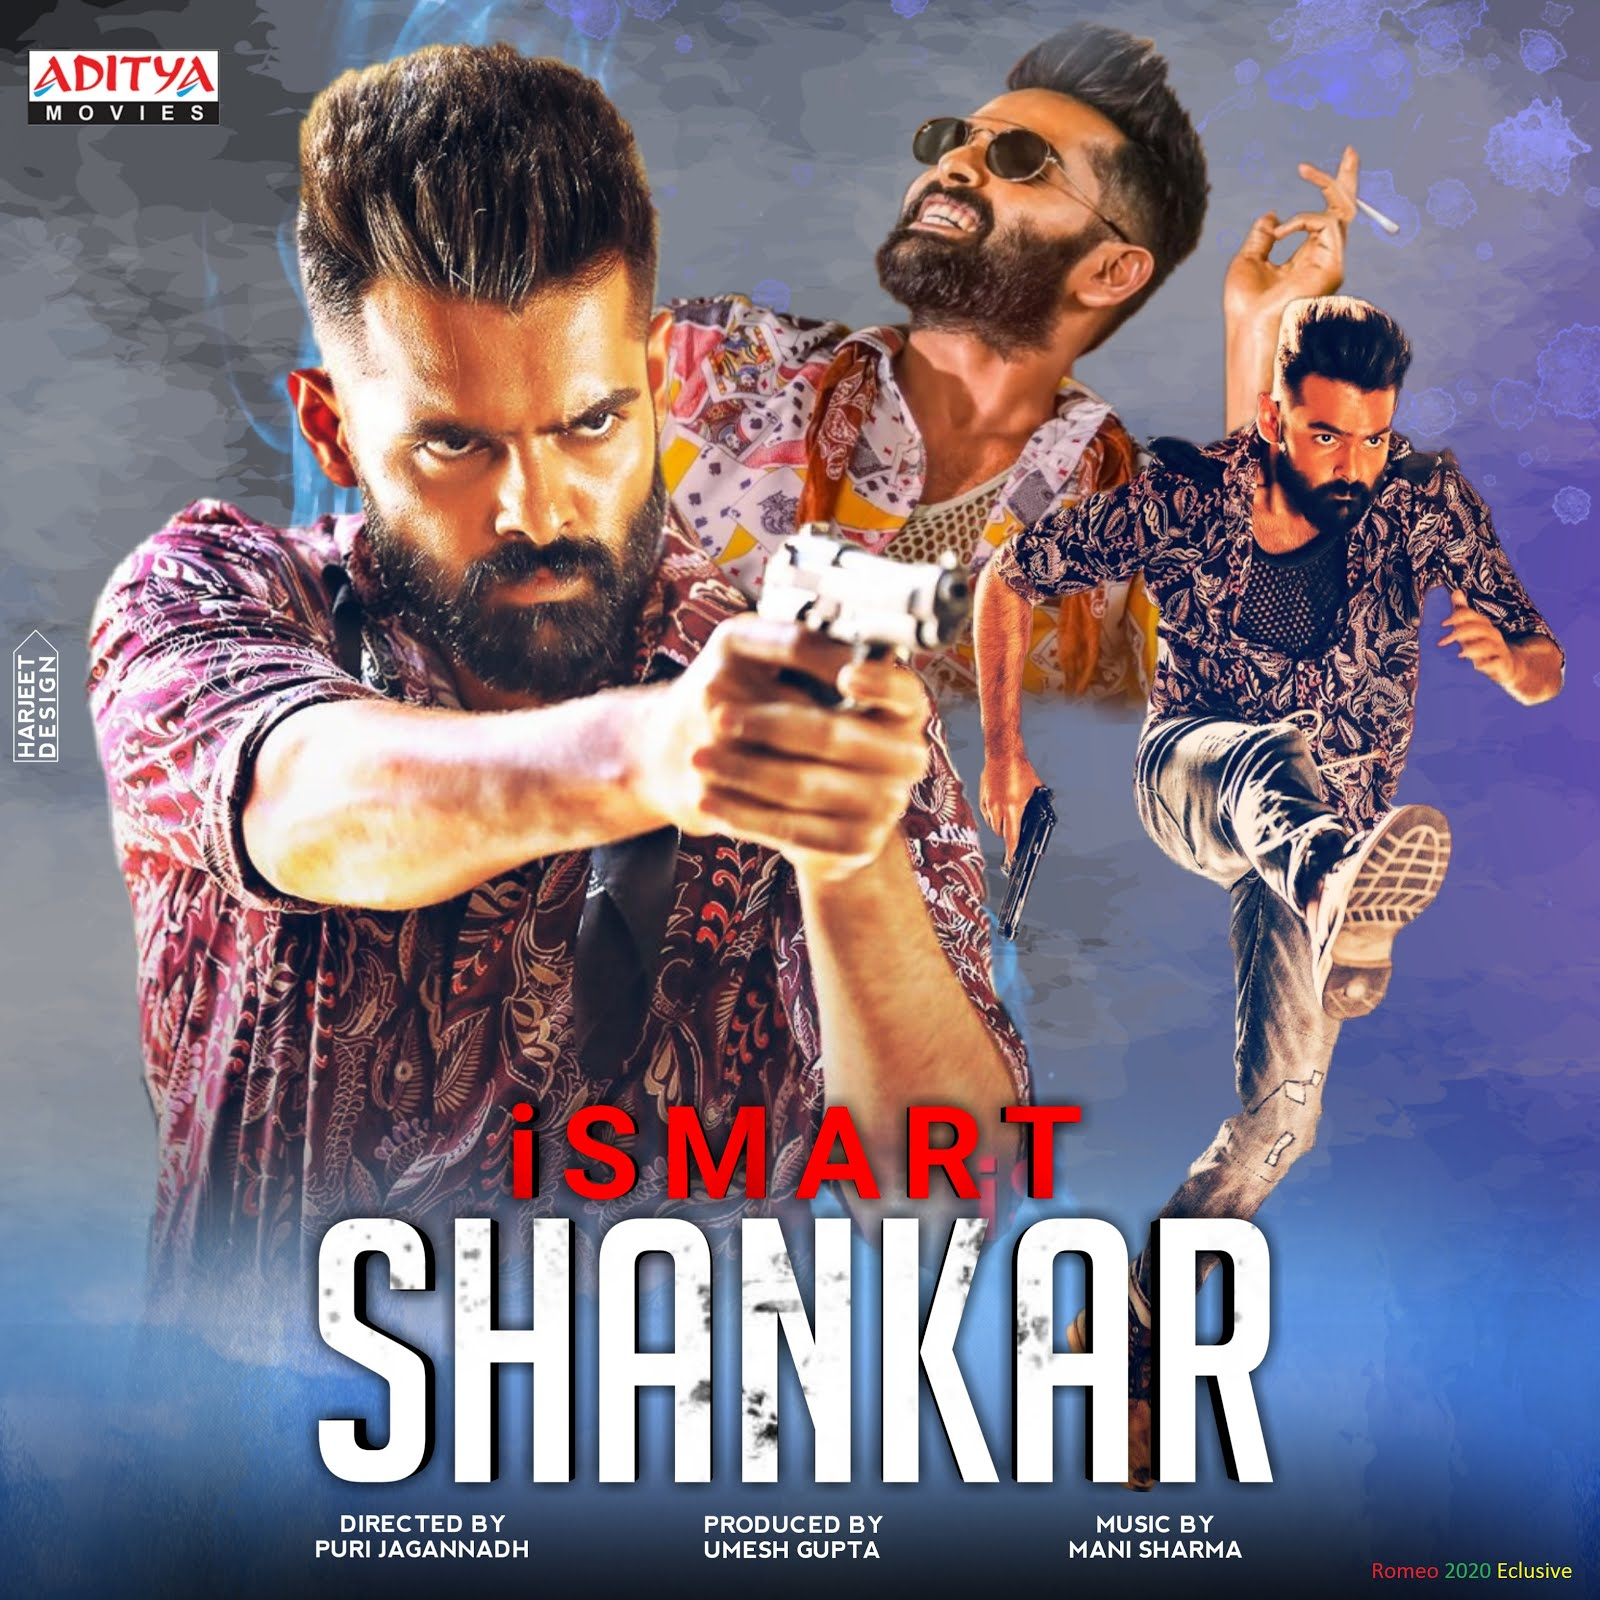 iSmart Shankar 2020 Hindi Dubbed 900MB HDRip Download